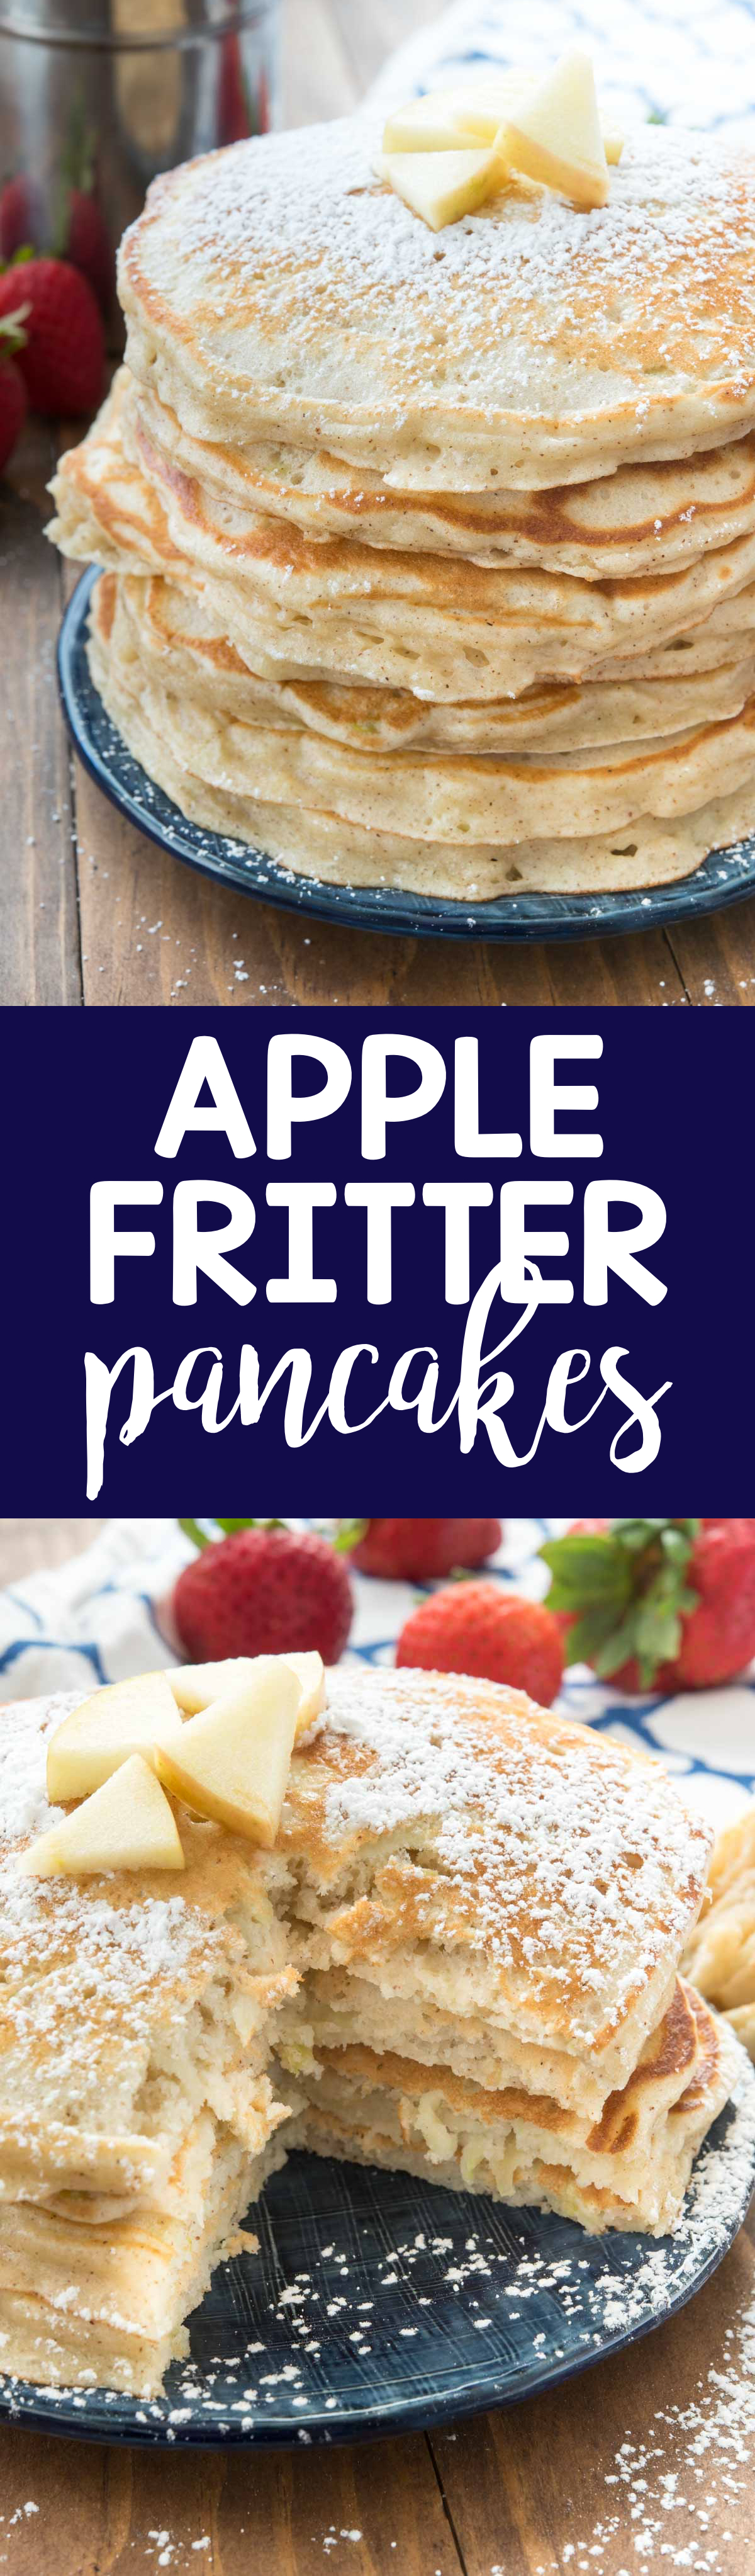 Apple Fritter Pancakes are FULL of grated apples and they're the perfect fall breakfast. Made with PROTEIN pancake mix, they fill you up too!